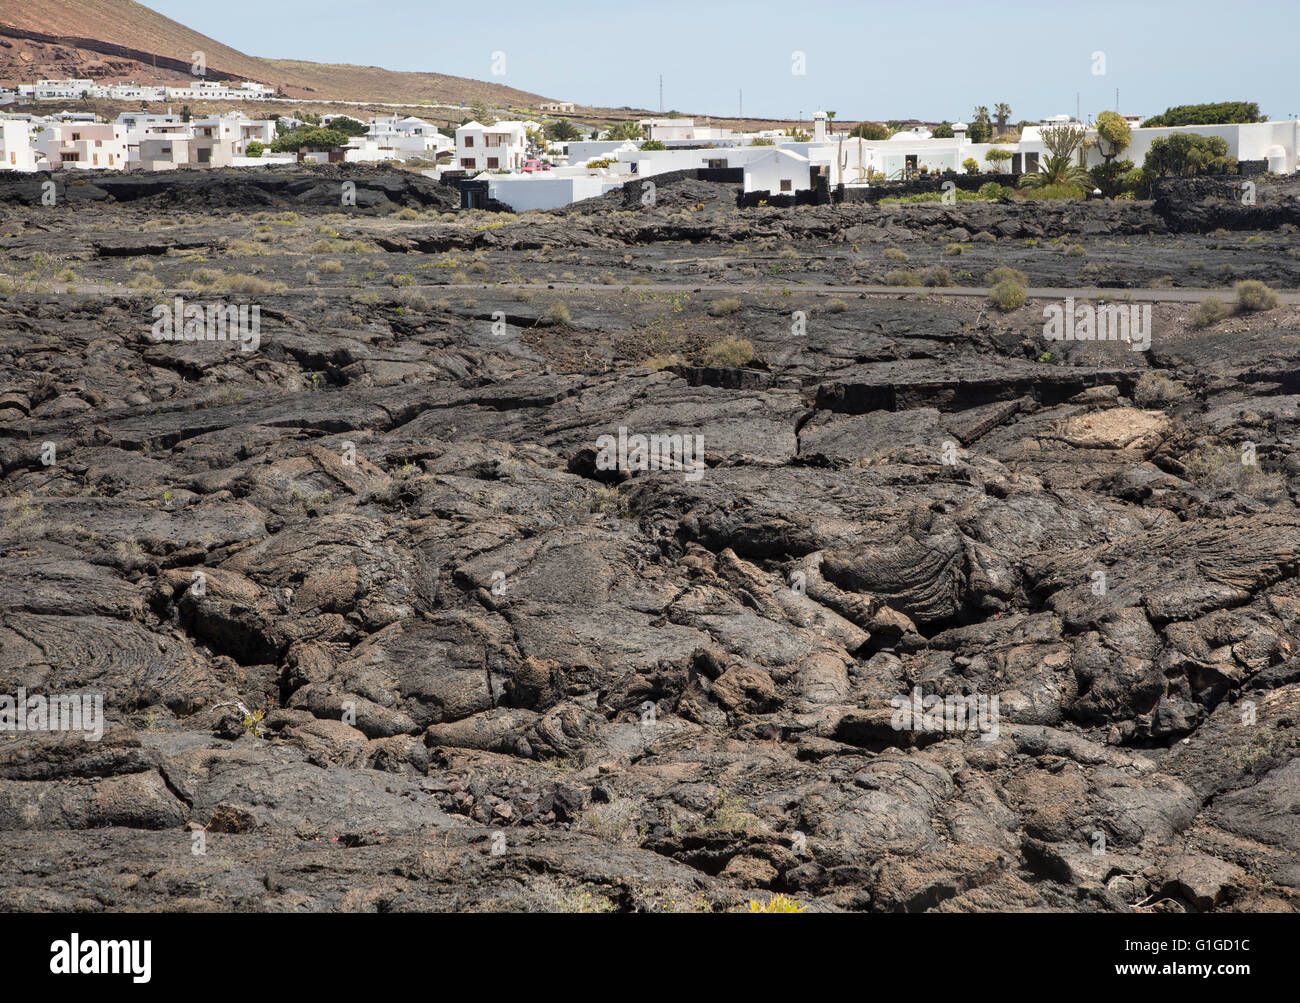 Solidified pahoehoe or ropey lava field, Tahiche village, Lanzarote, Canary Islands, Spain Stock Photo